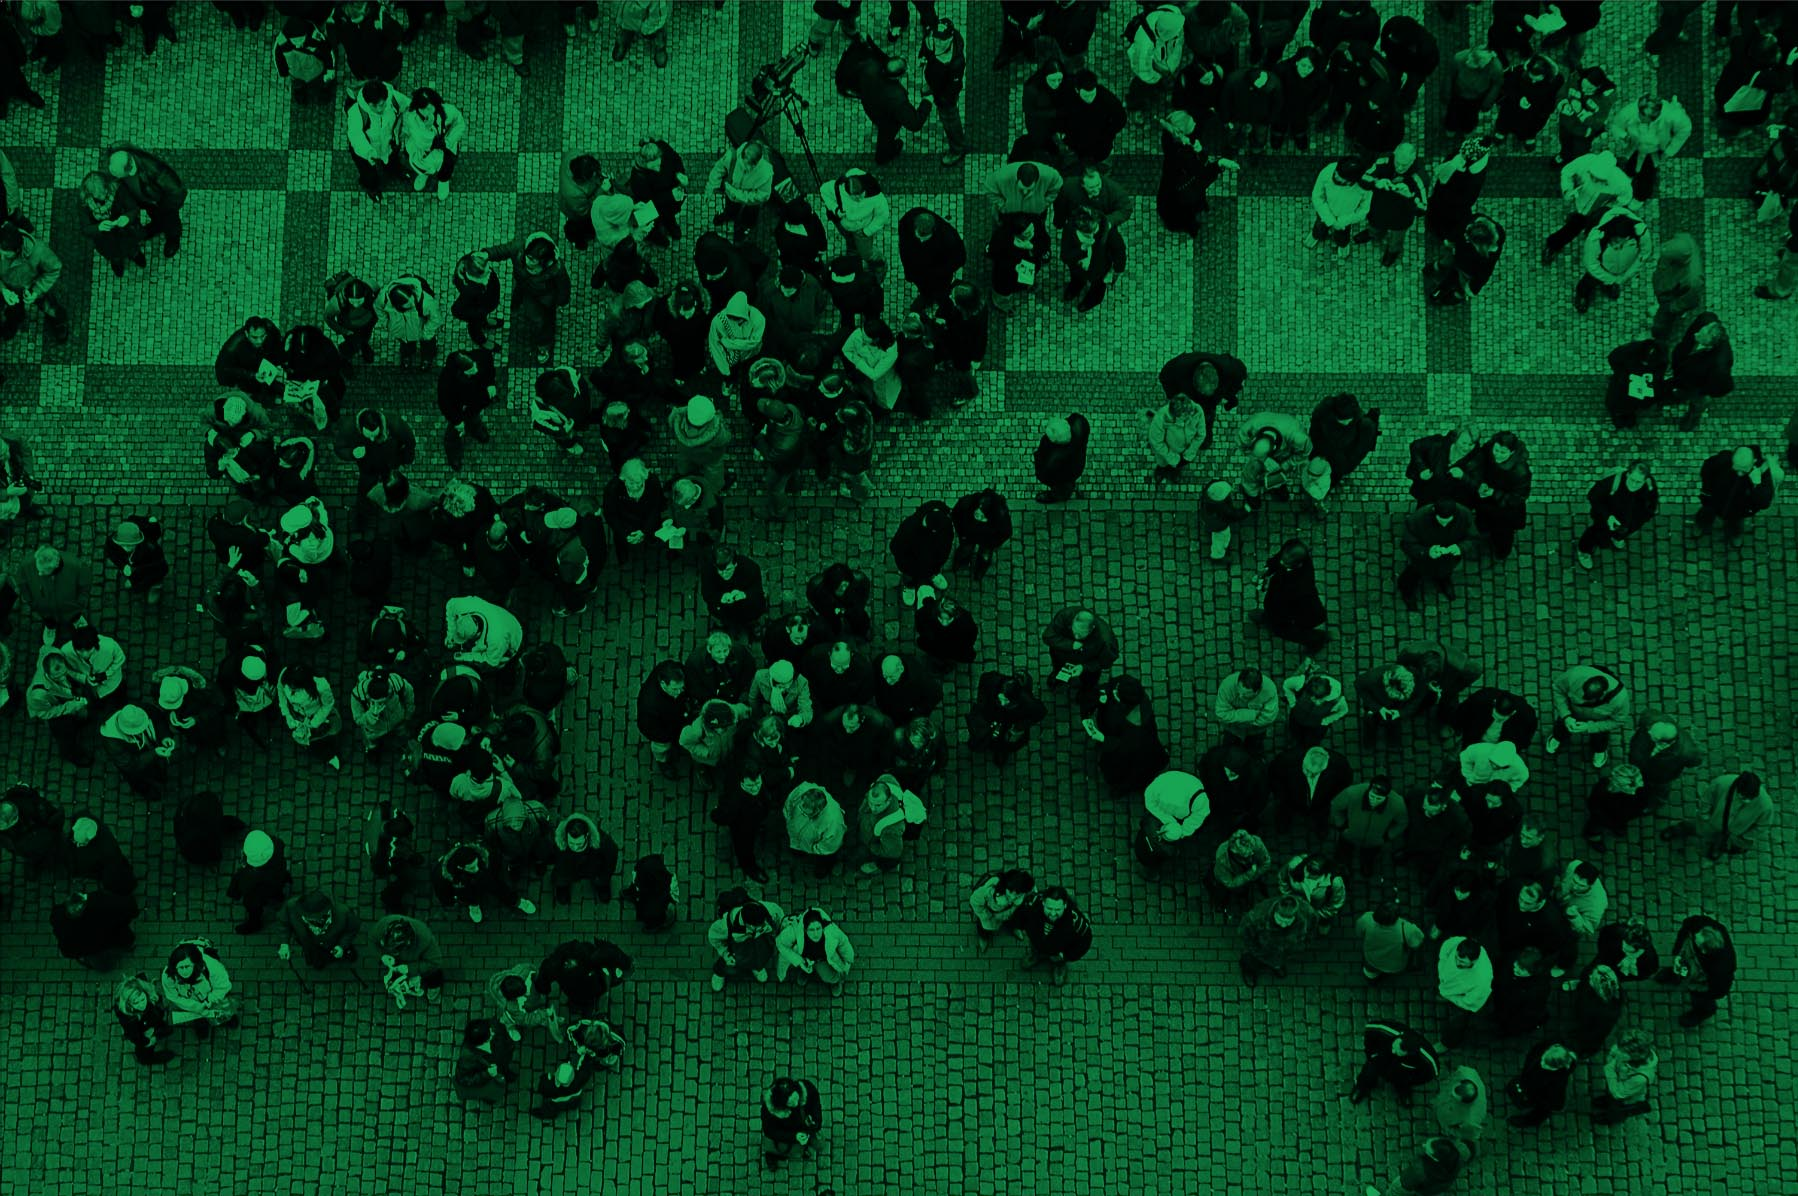 Crowd_Street_Crossing_Green.jpg